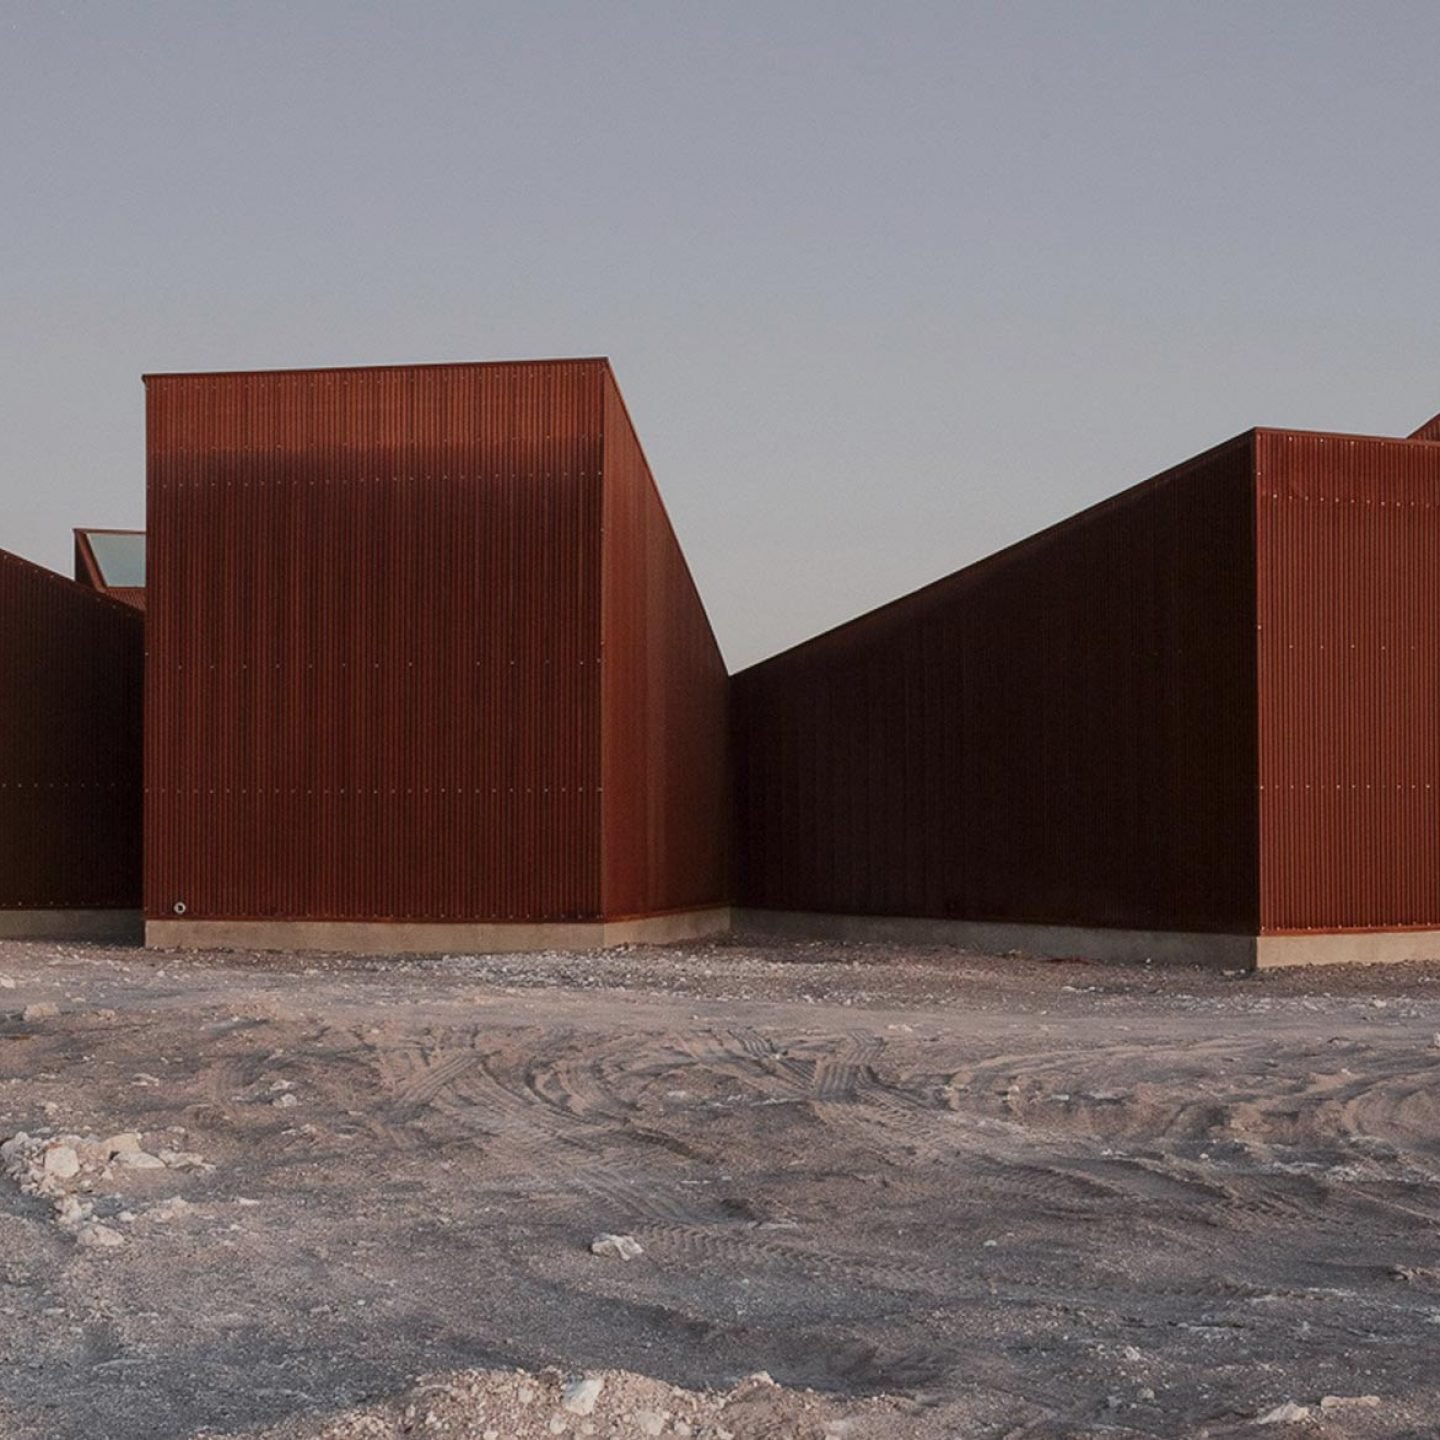 iGNANT-Architecture-Desert-Interpretation-Center-Emilio-Marin-Juan-Carlos-Lopez-